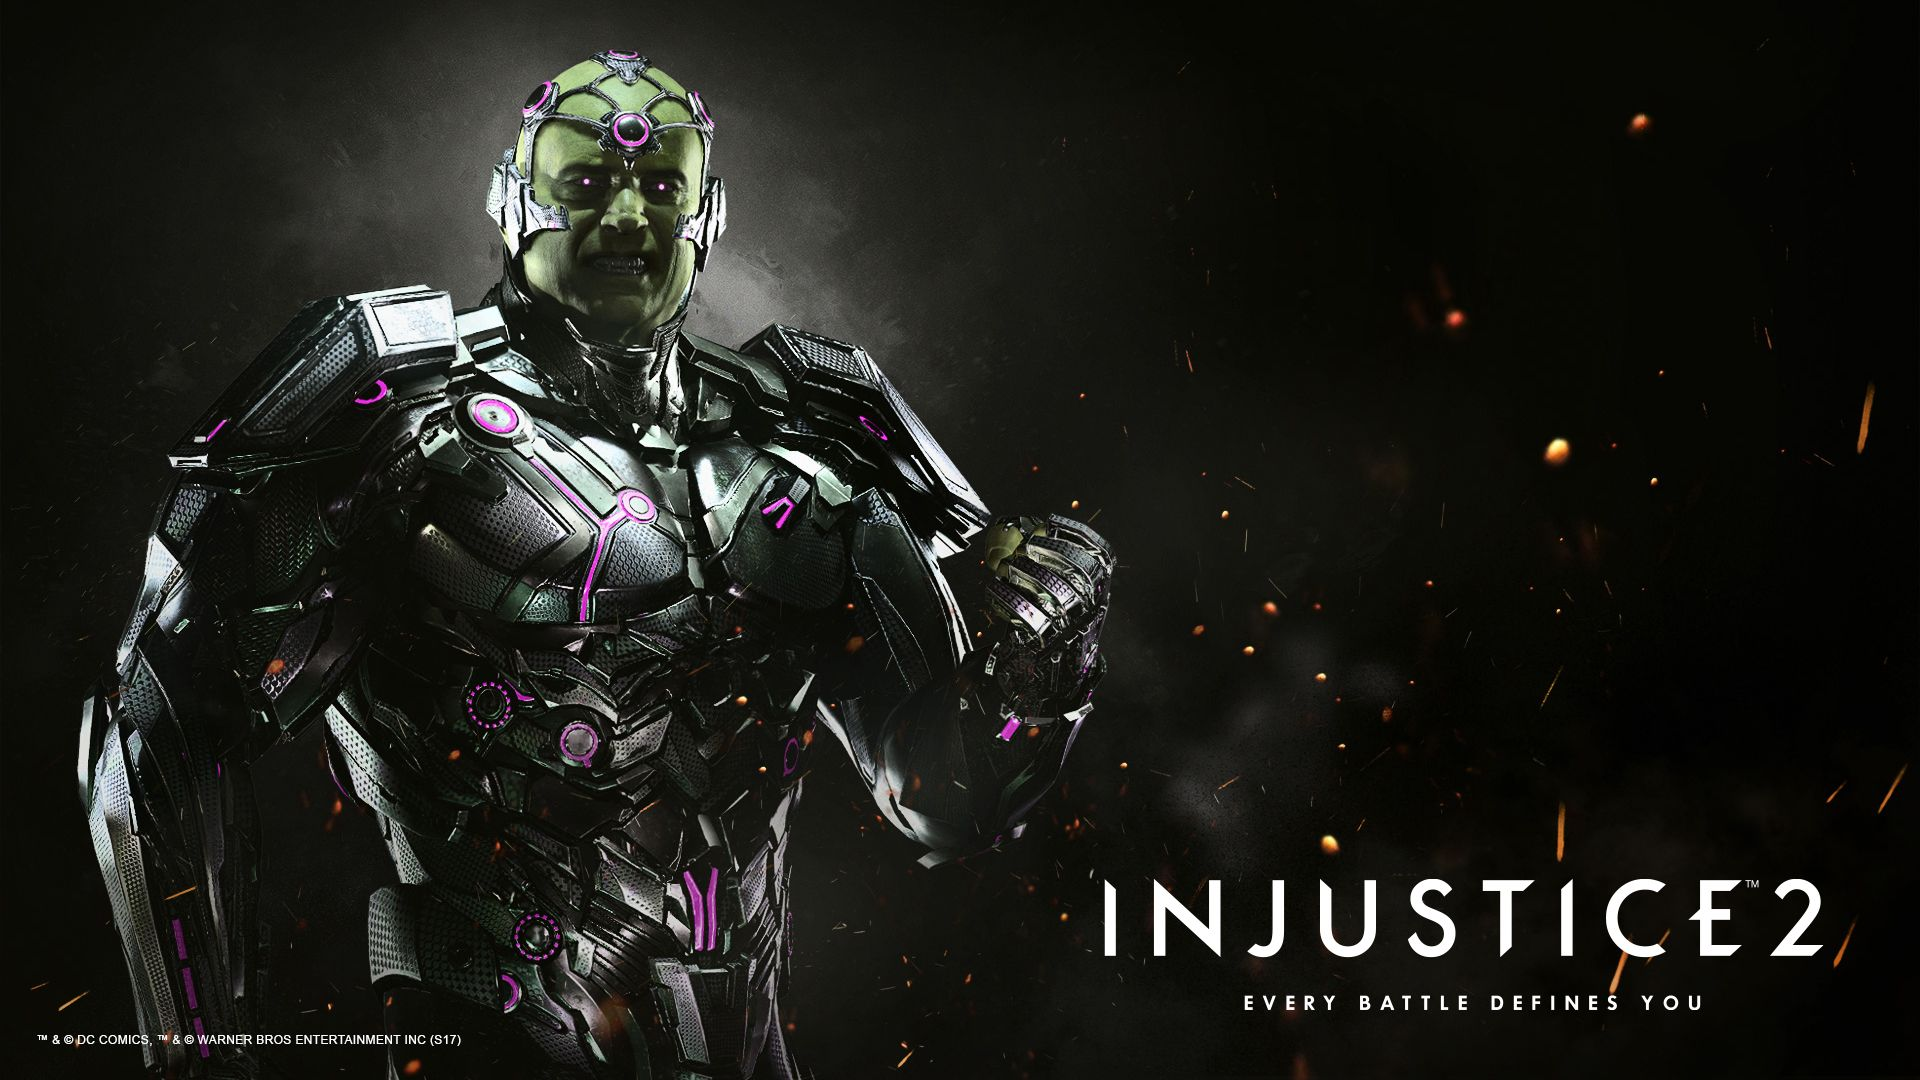 Official injustice 2 wallpapers superman homepage download these and other injustice 2 wallpapers from injustice voltagebd Choice Image